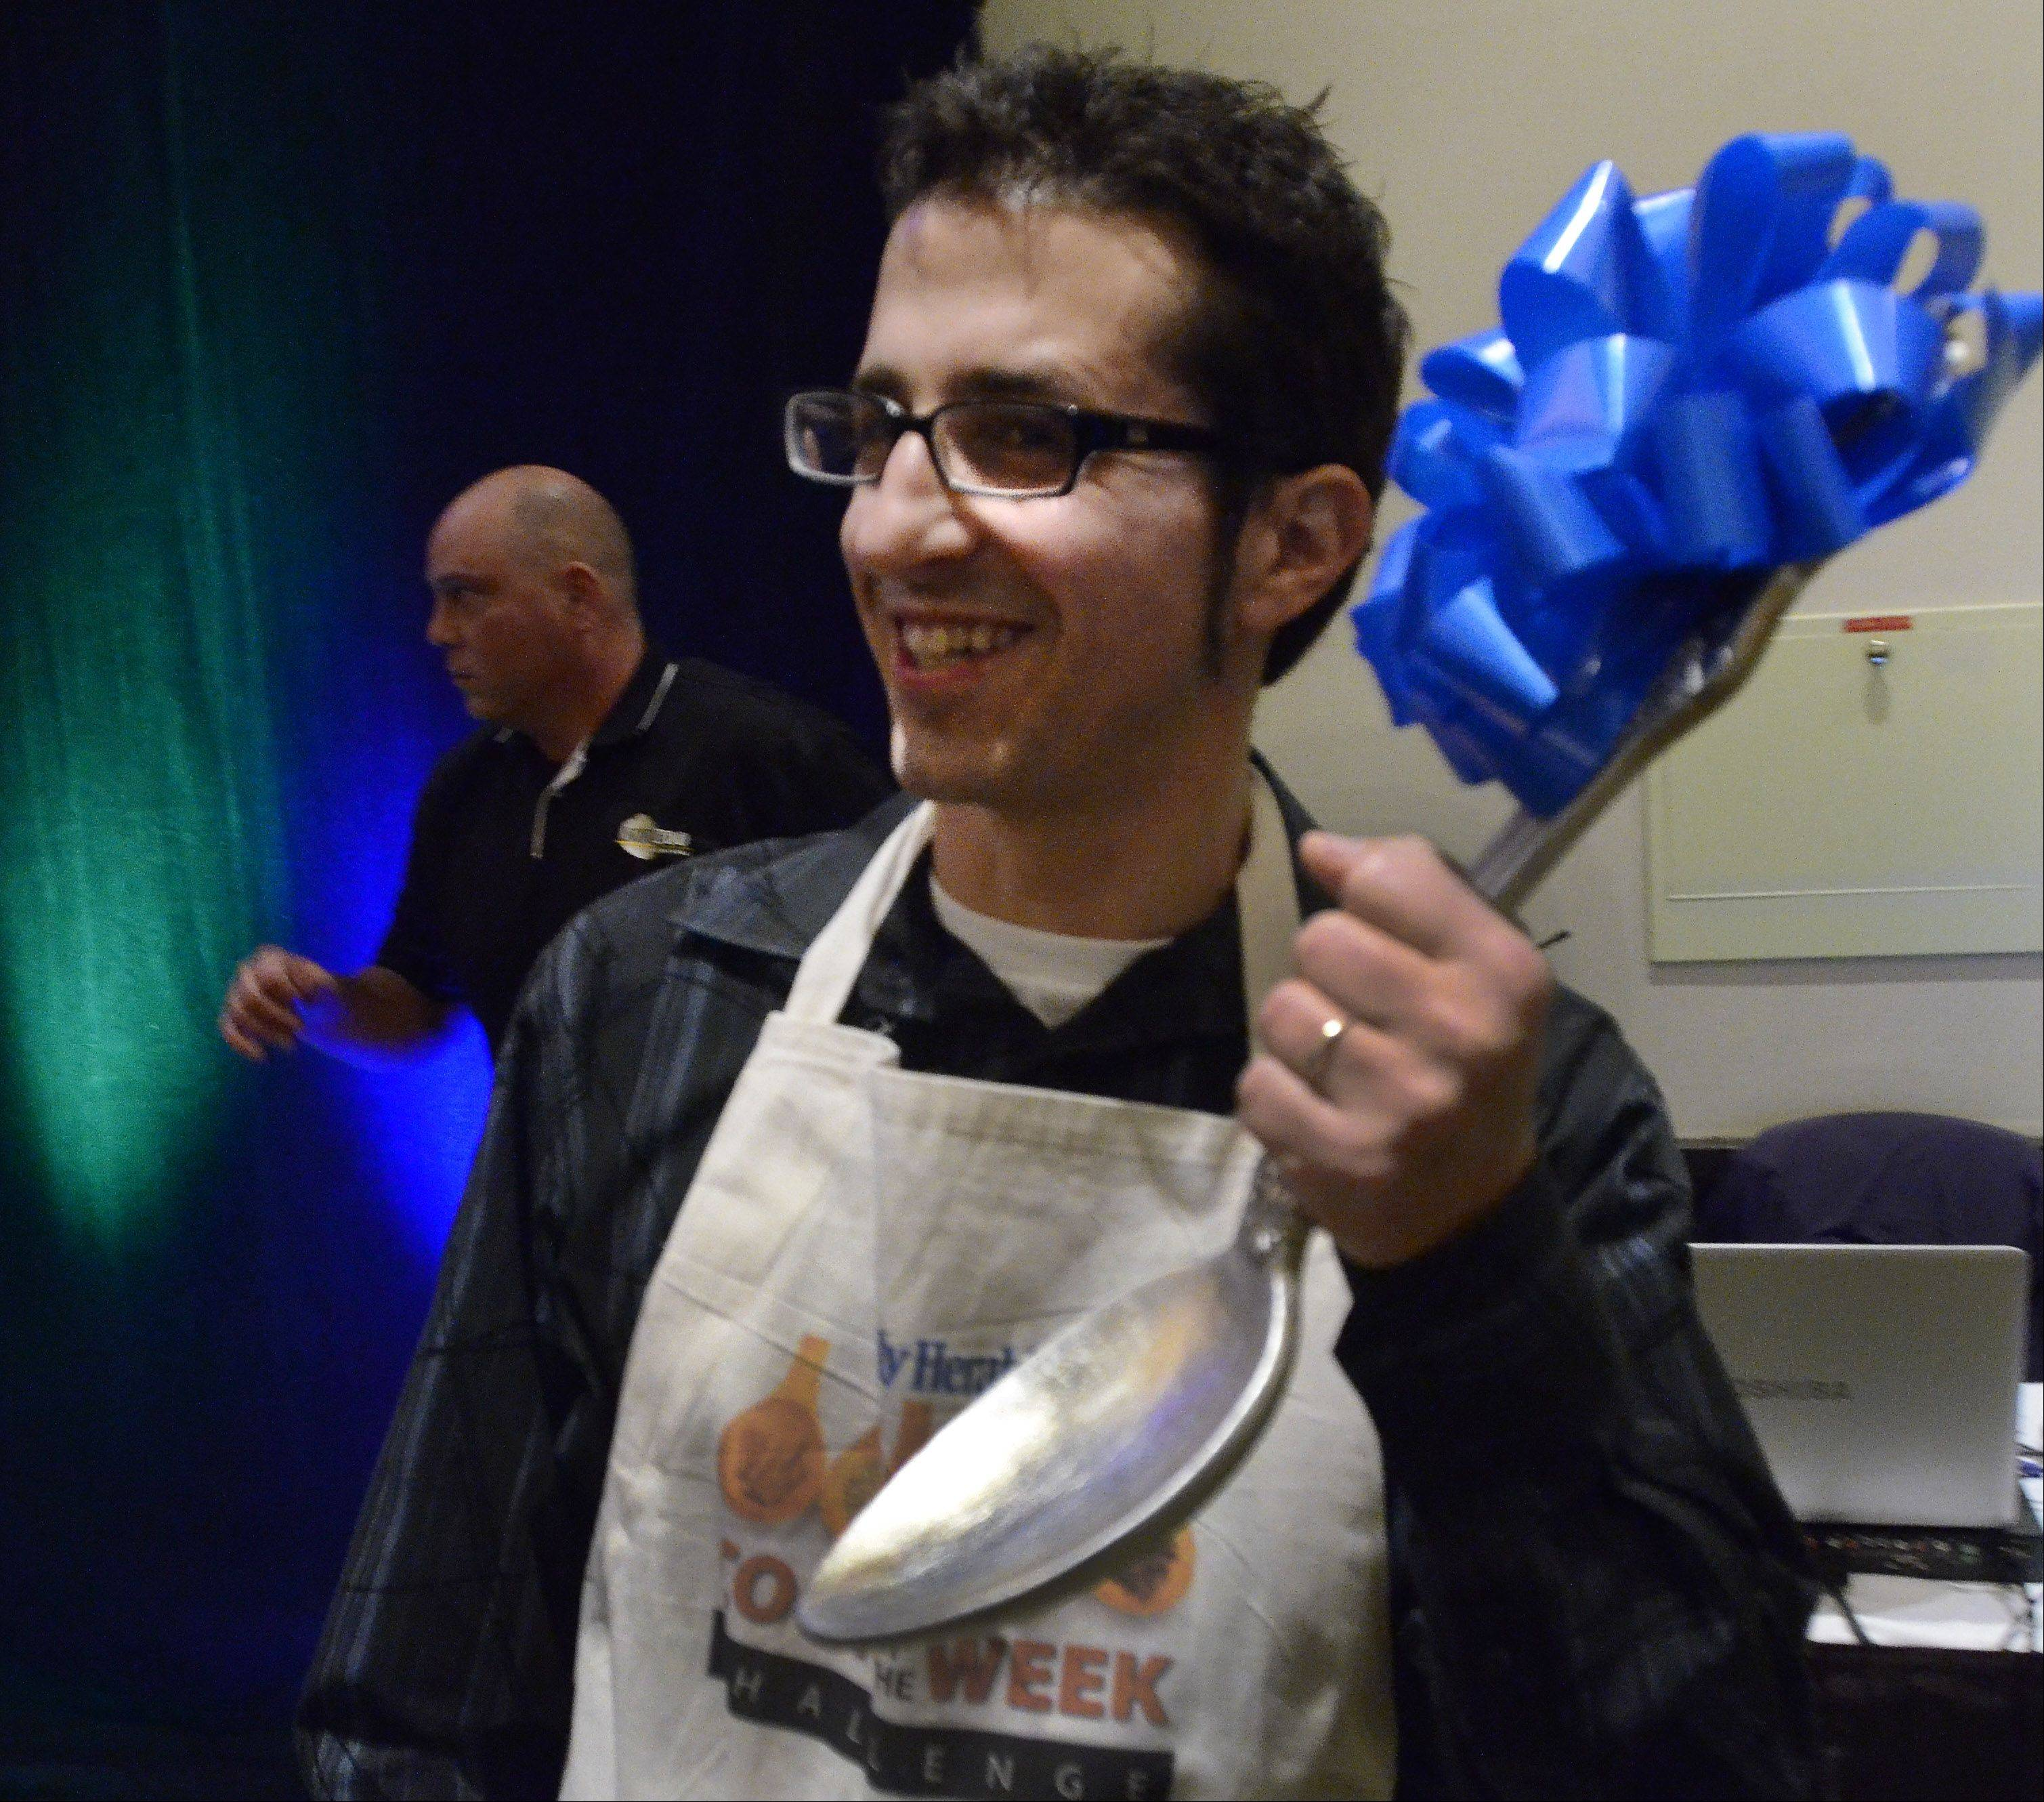 Michael Pennisi of Carpentersville is named Cook of the year 2012 after winning the Cook of the Week Challenge Cook-off with his dish Salmon Saute with spicy sweet potatoes and brussels slaw.